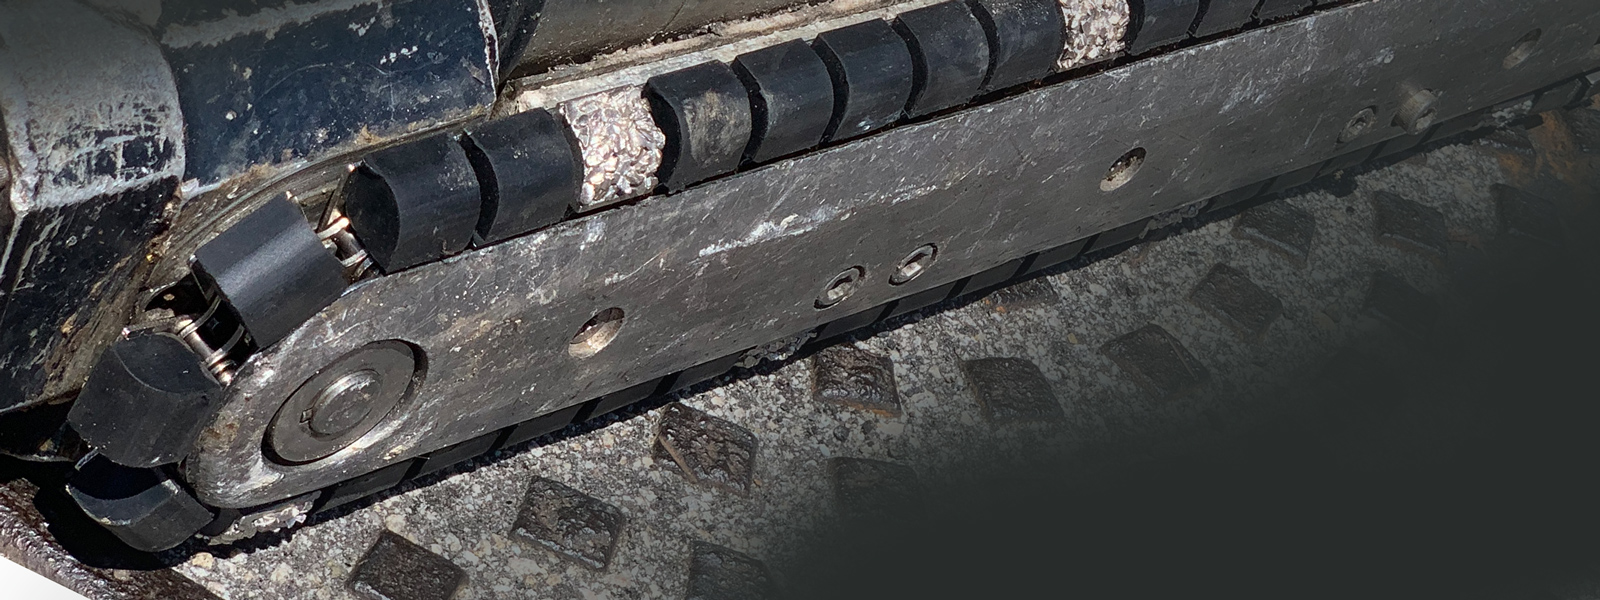 Cues Compatible Crawler Tracks | Fits Cues Ultra Shorty 21